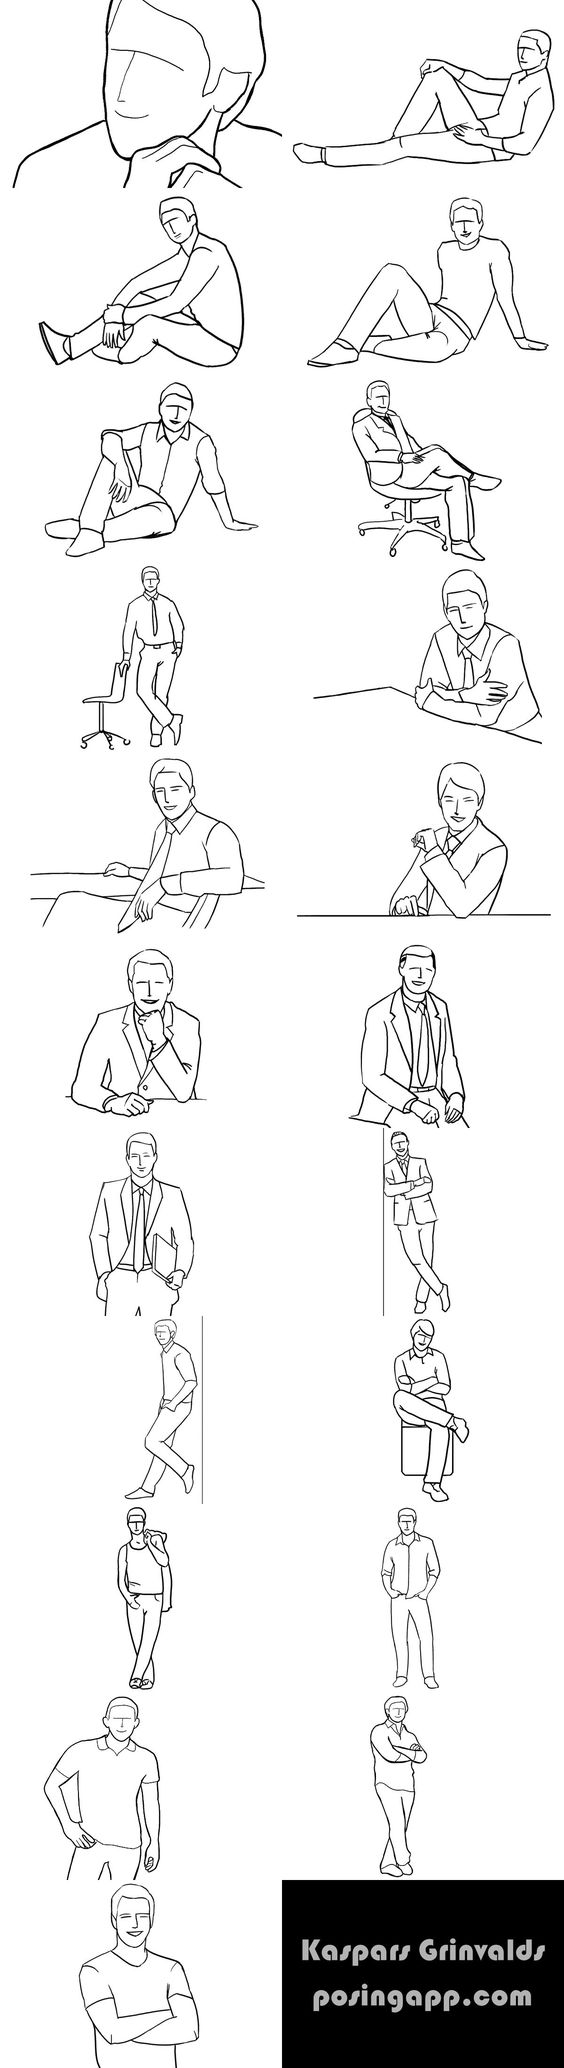 ideas for male poses...